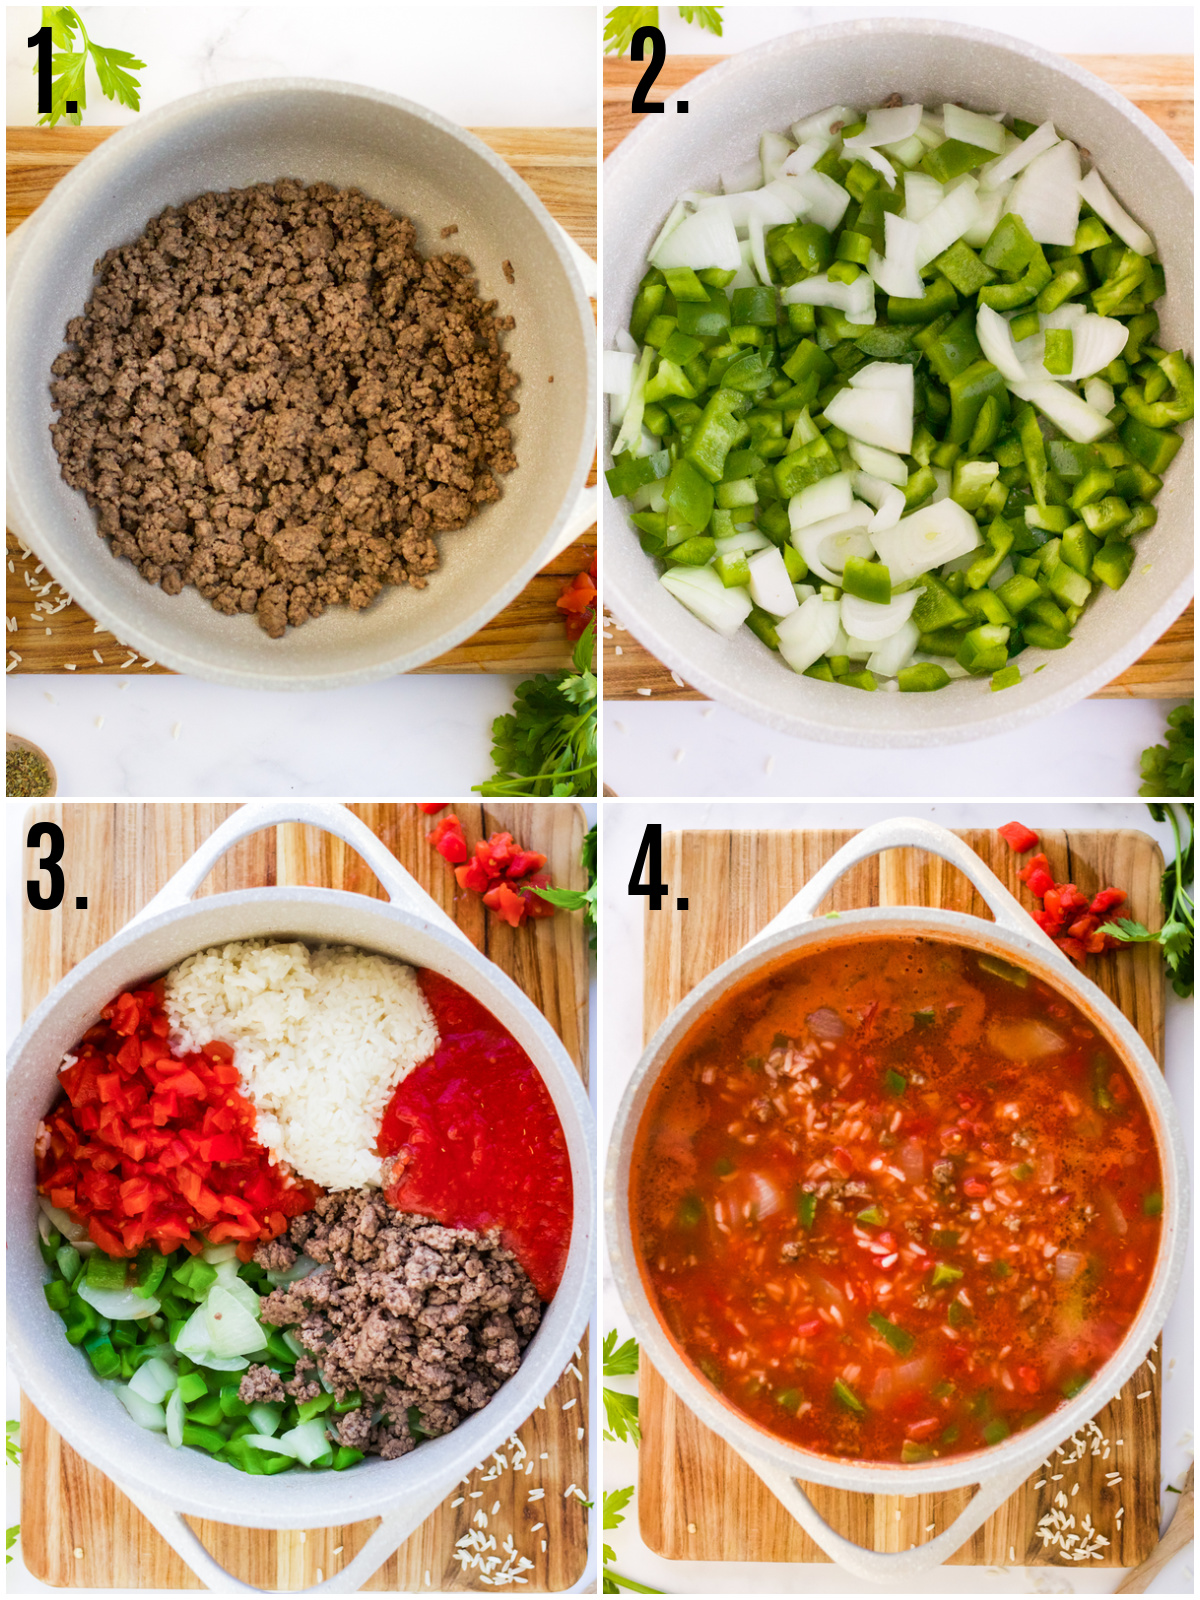 Step by step photos on how to make Stuffed Pepper Soup